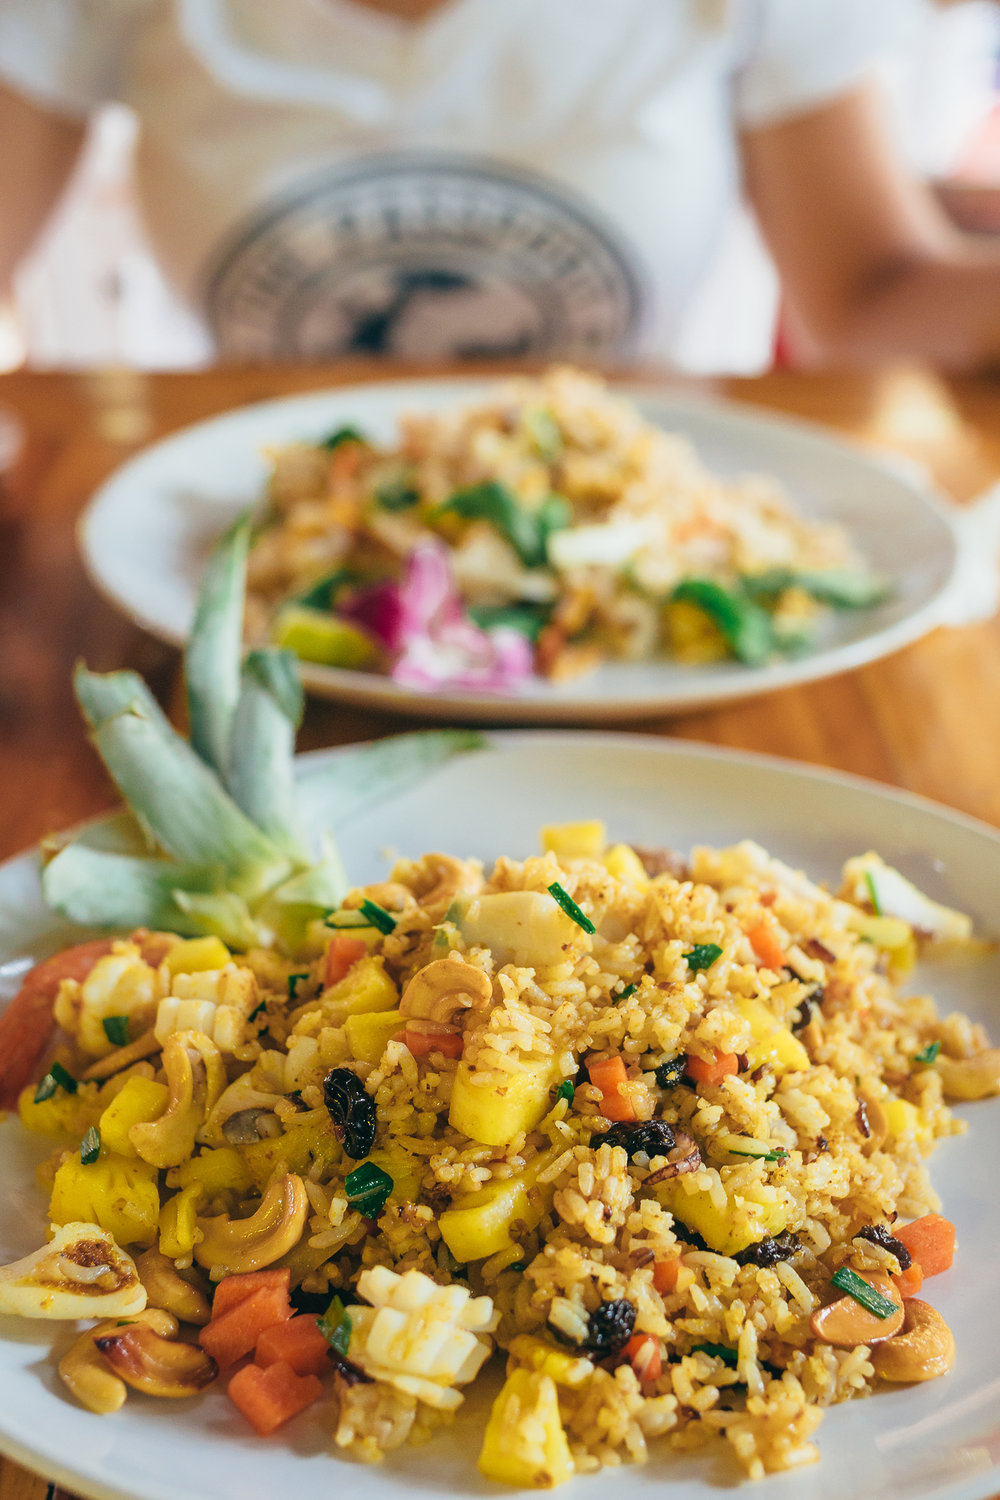 Pinneaple fried rice